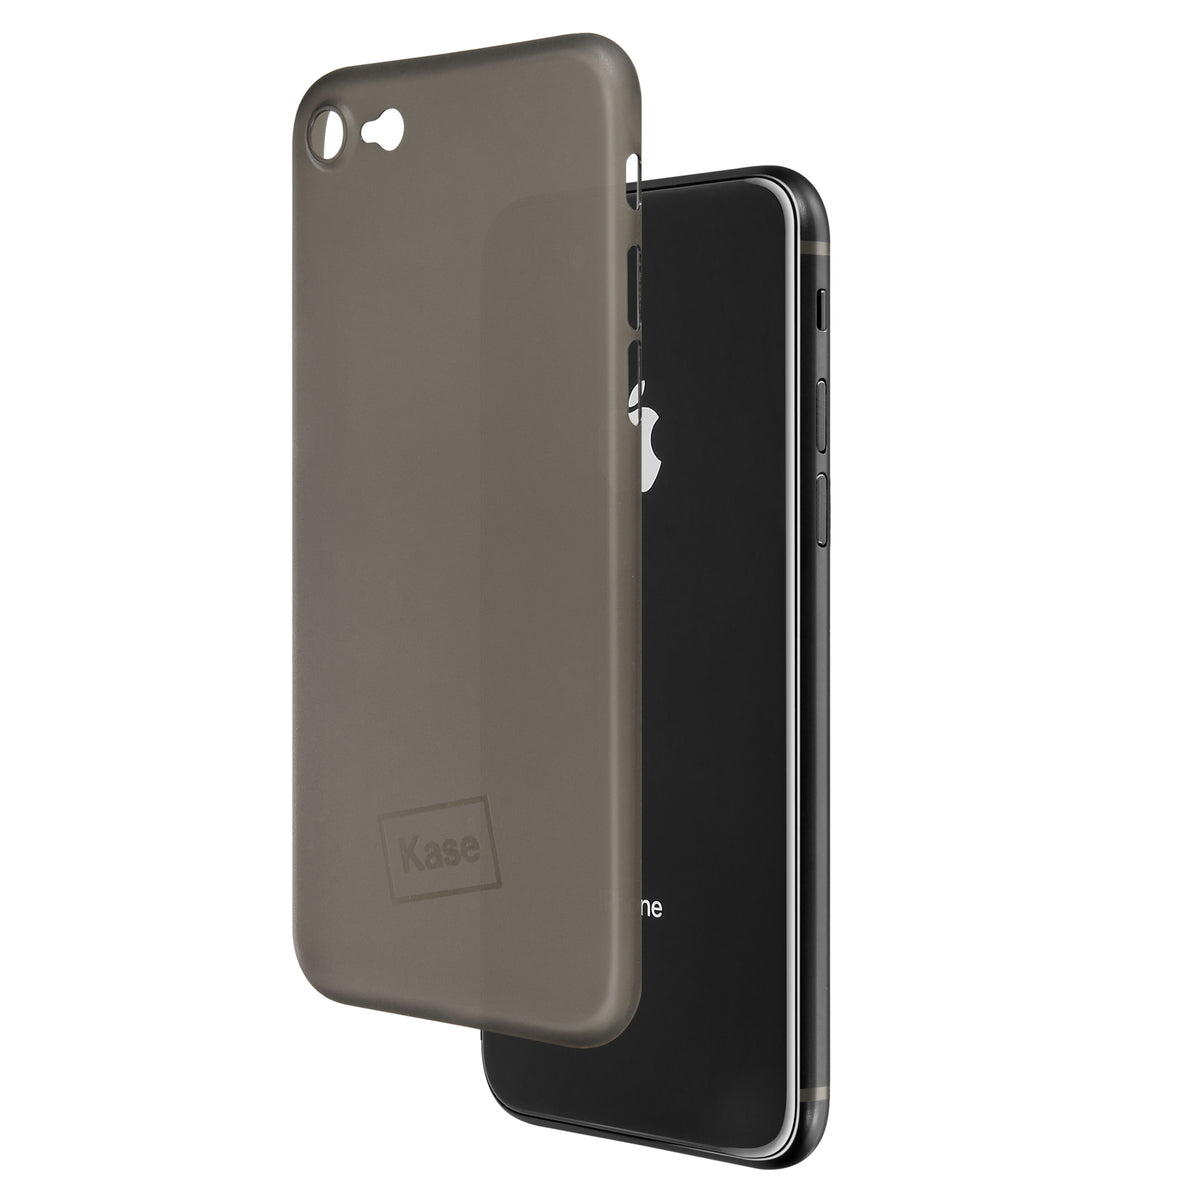 Go Original iPhone 8 Slim Case (SE Compatible)